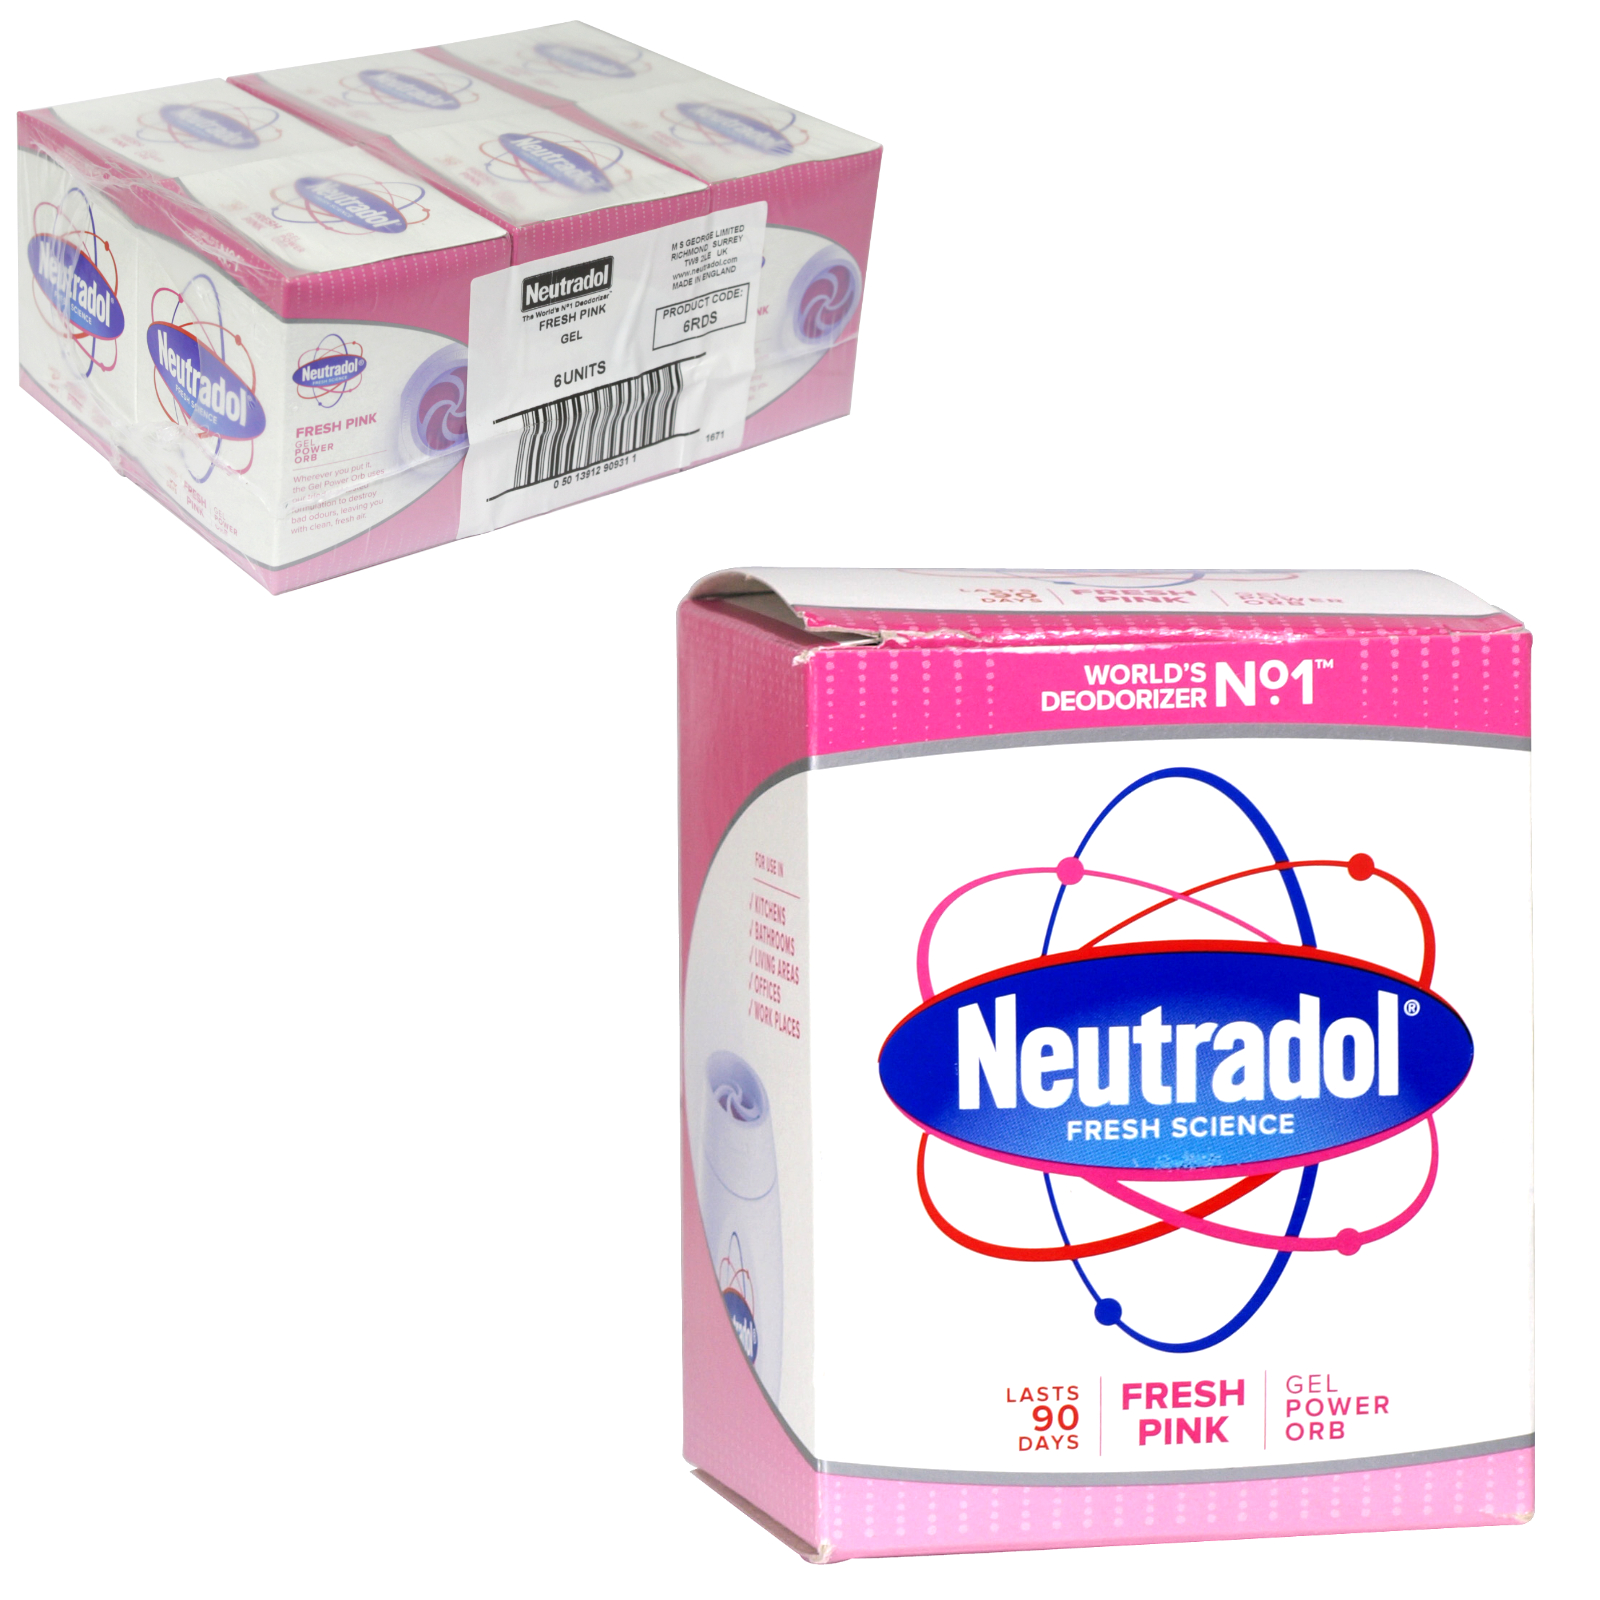 NEUTRADOL GEL AIR FRESH 135GM FRESH PINK X6